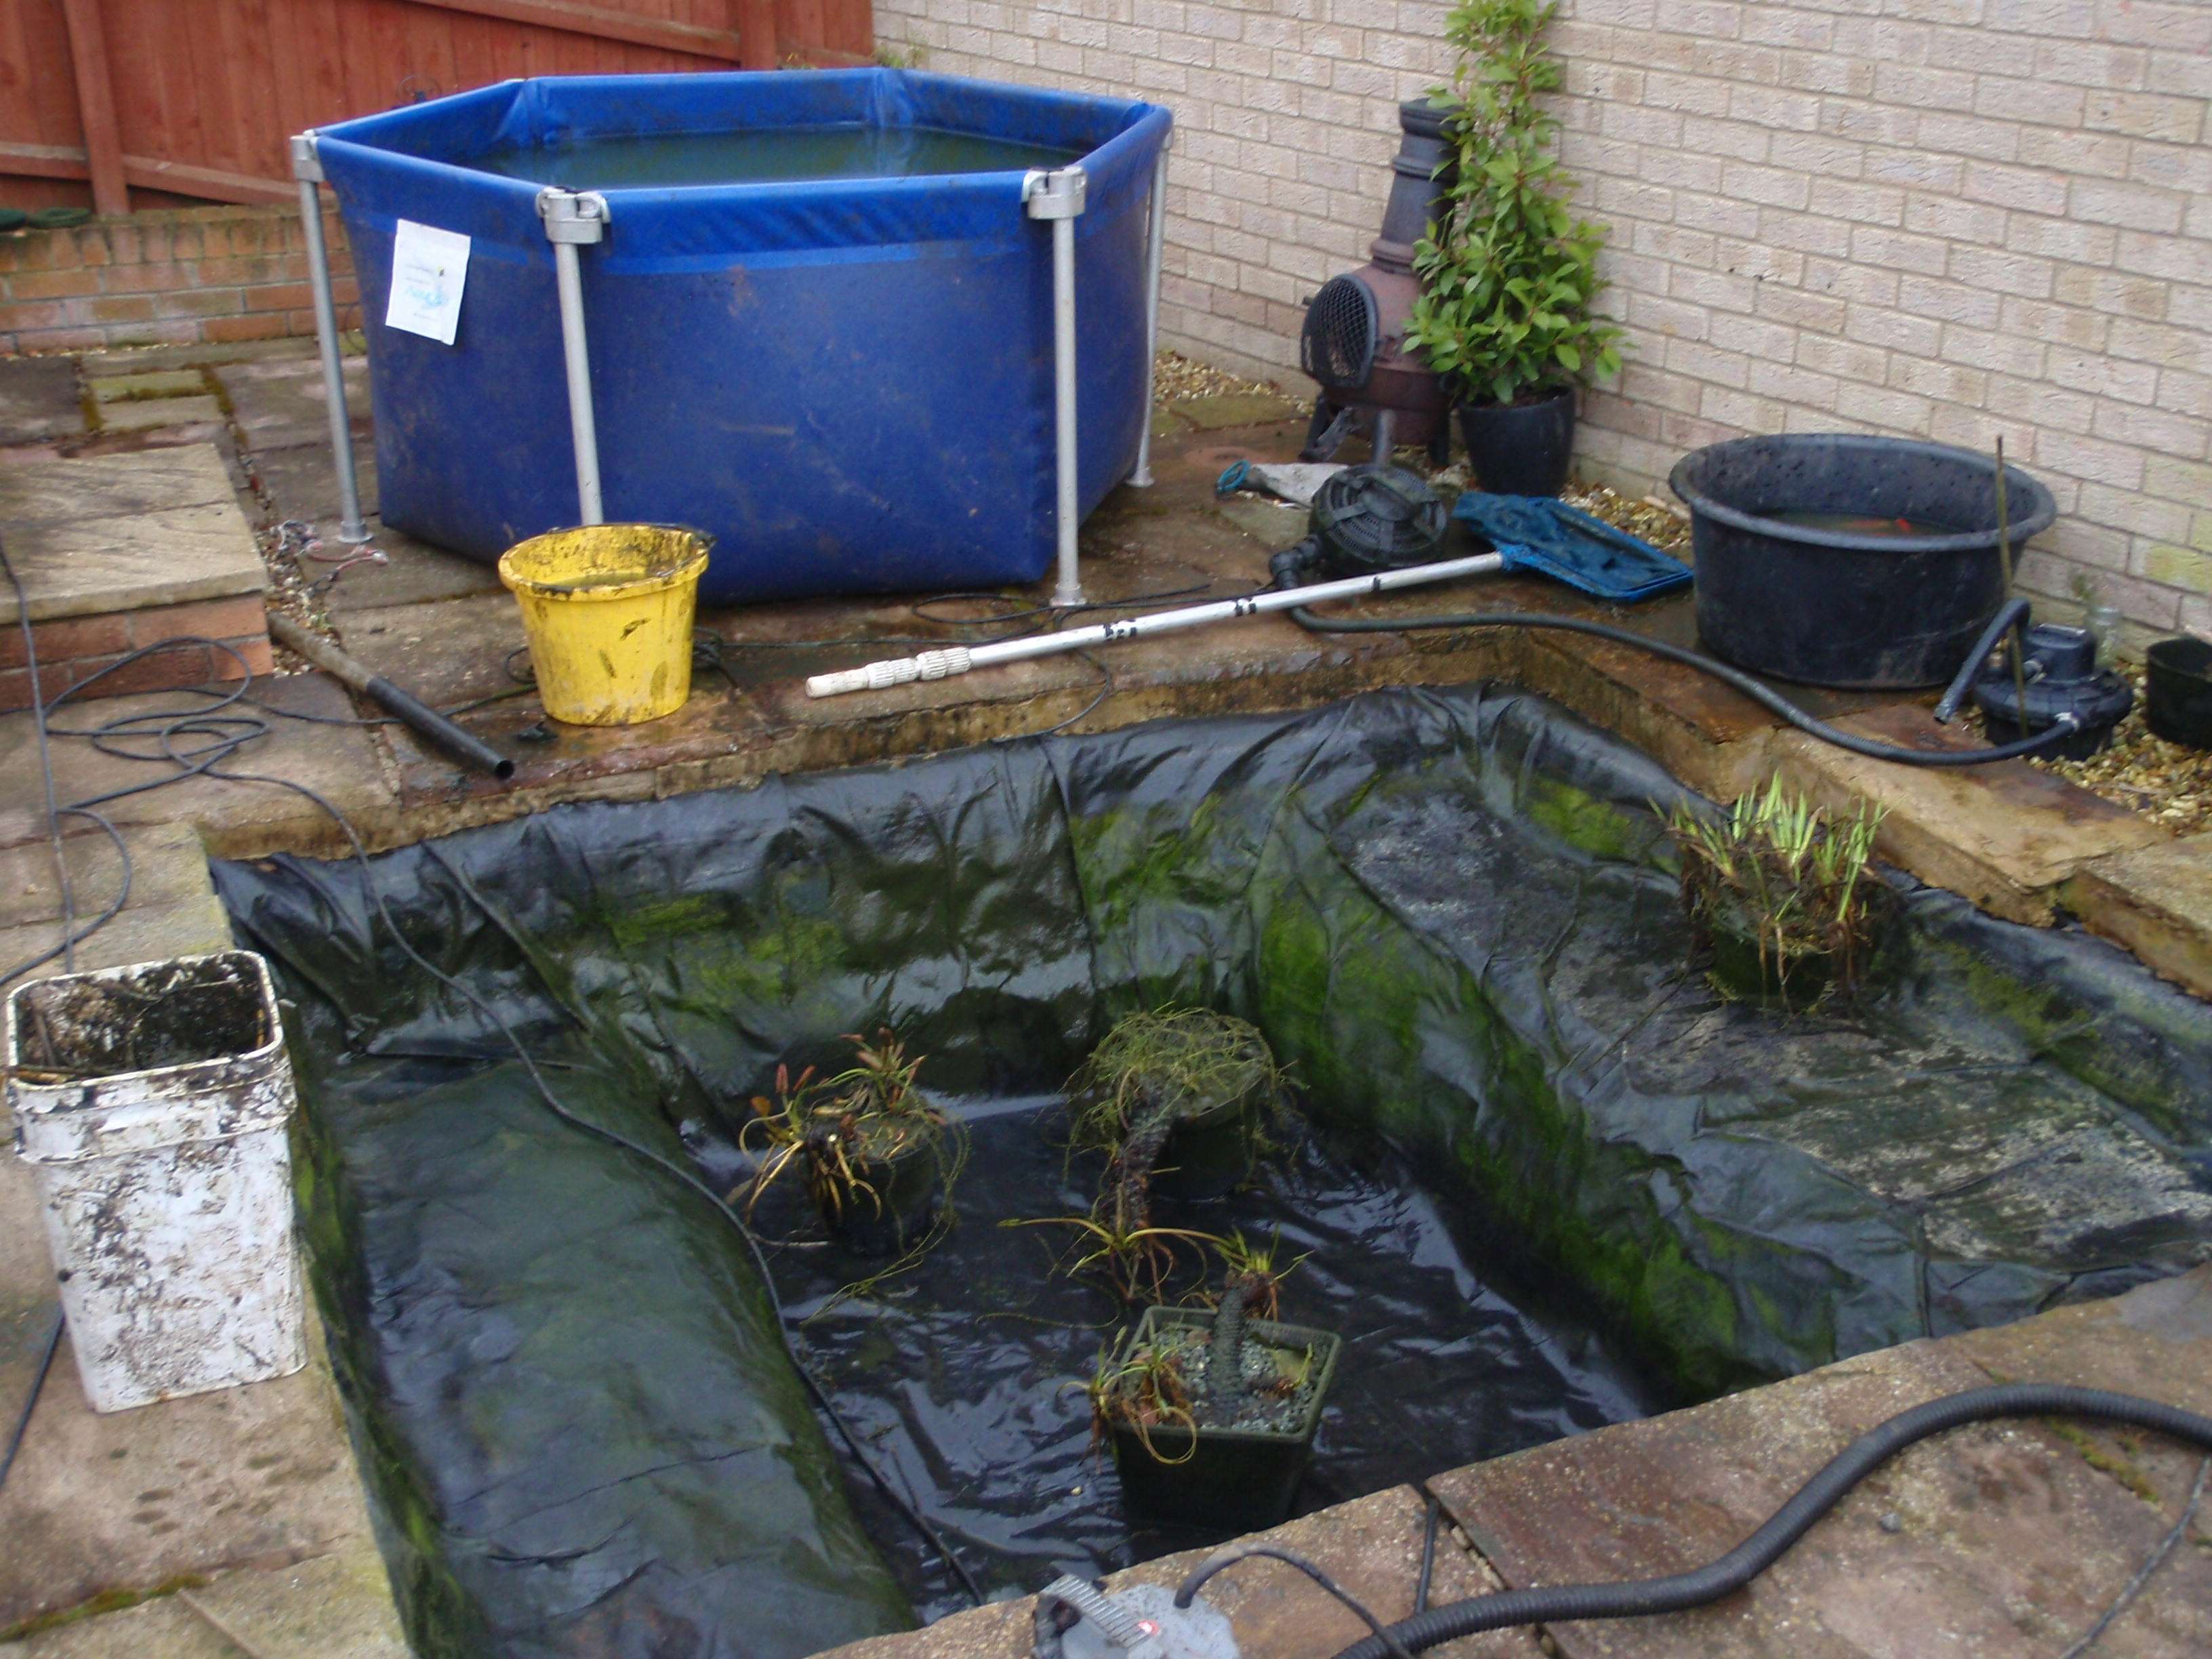 Garden pond cleaning a beginner 39 s guide garden pond for Pond cleaning fish